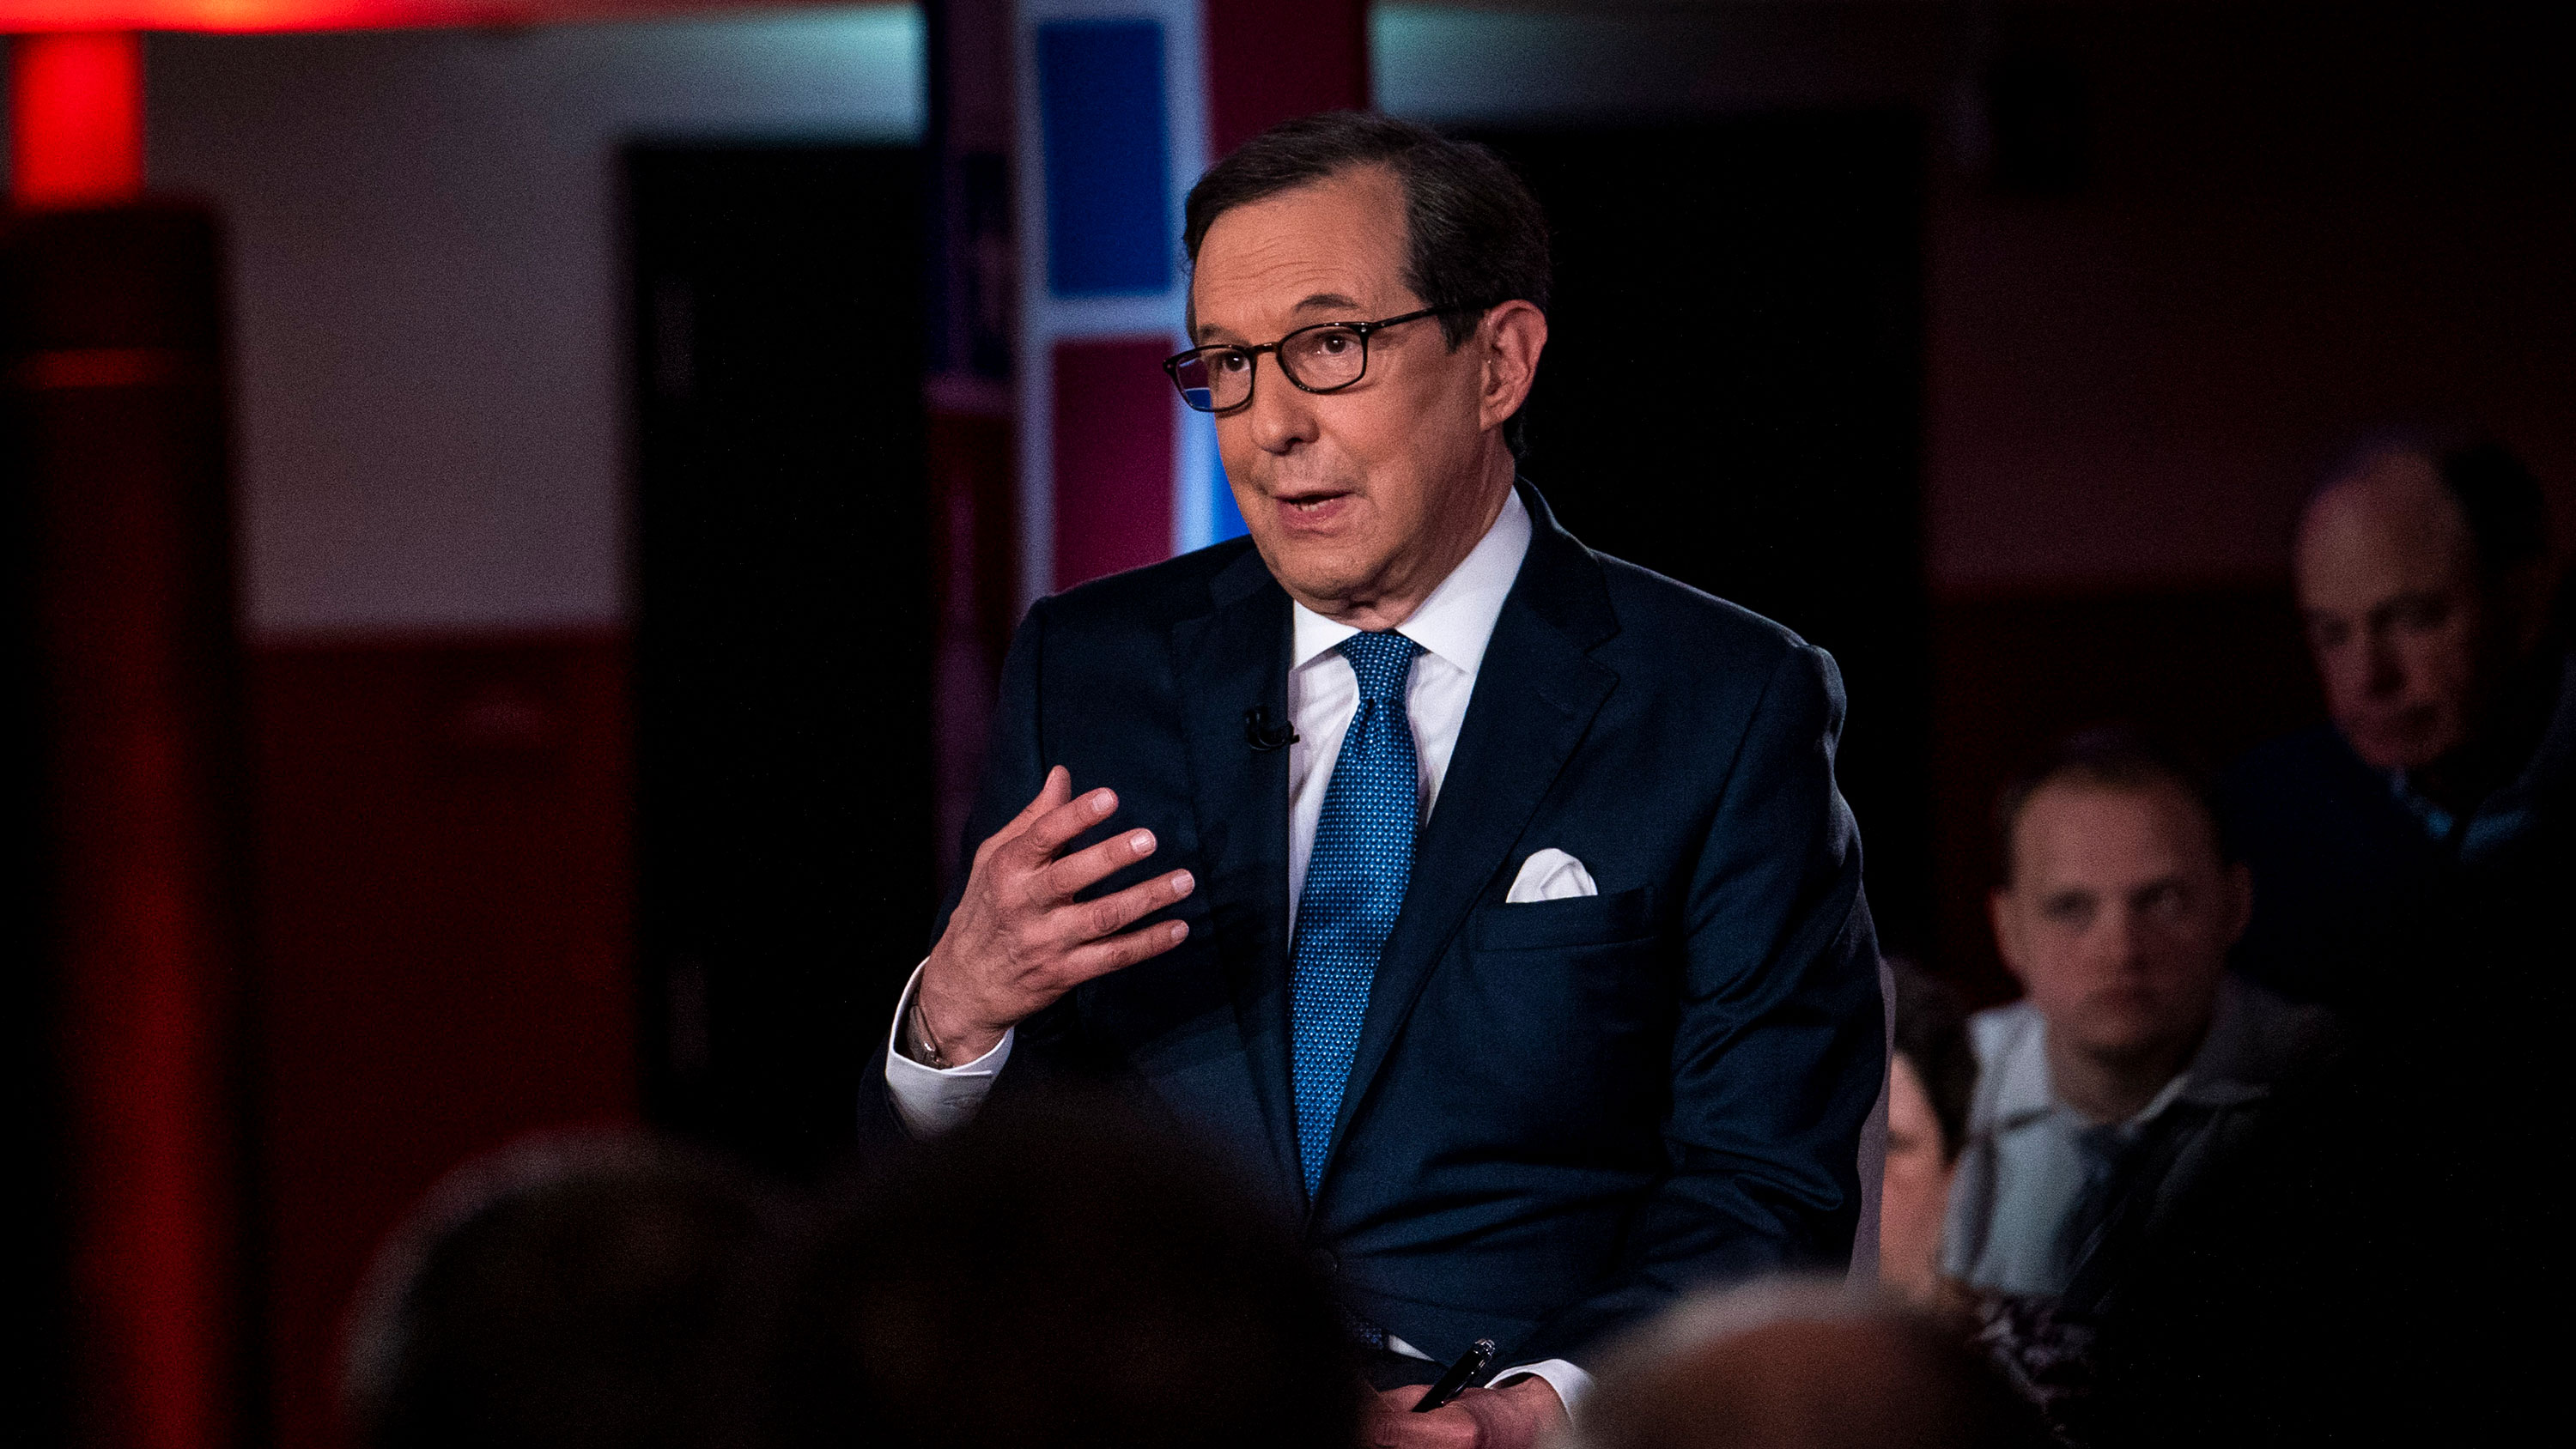 Chris Wallace won't fact check Trump and Biden during the debate